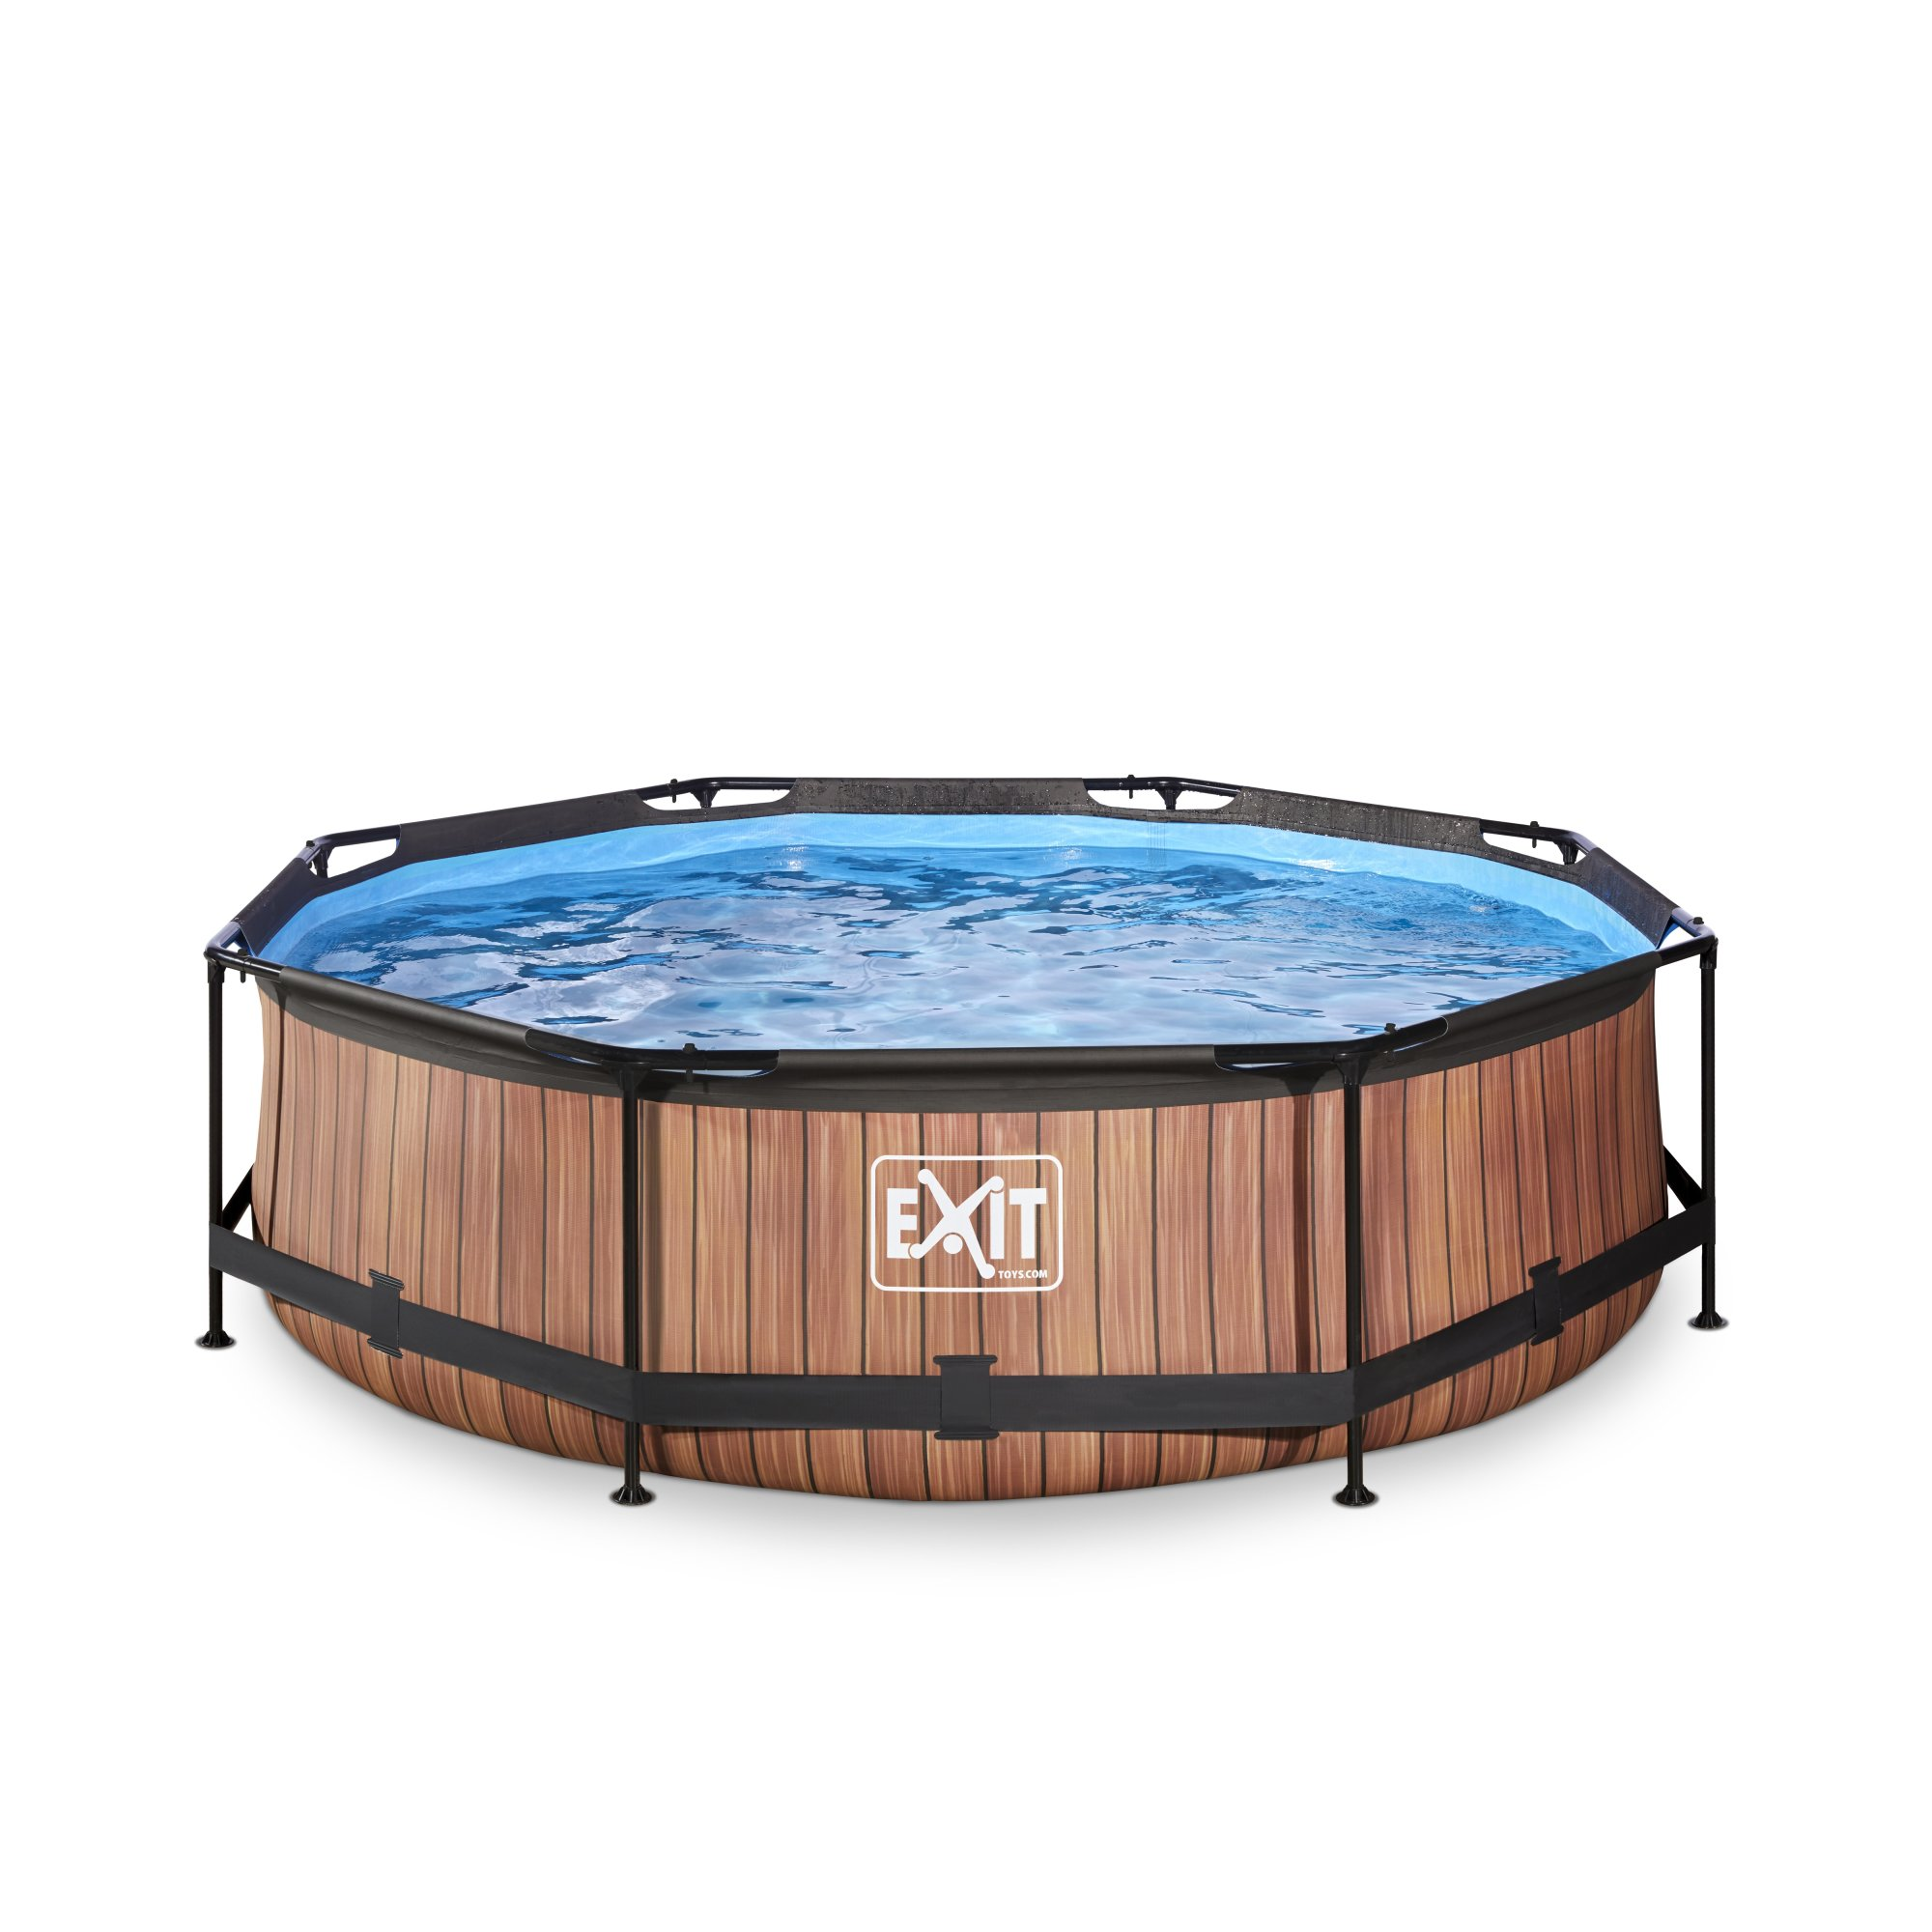 EXIT Wood Pool ø300x76cm with filter pump - Brown   Douglas Forest ...